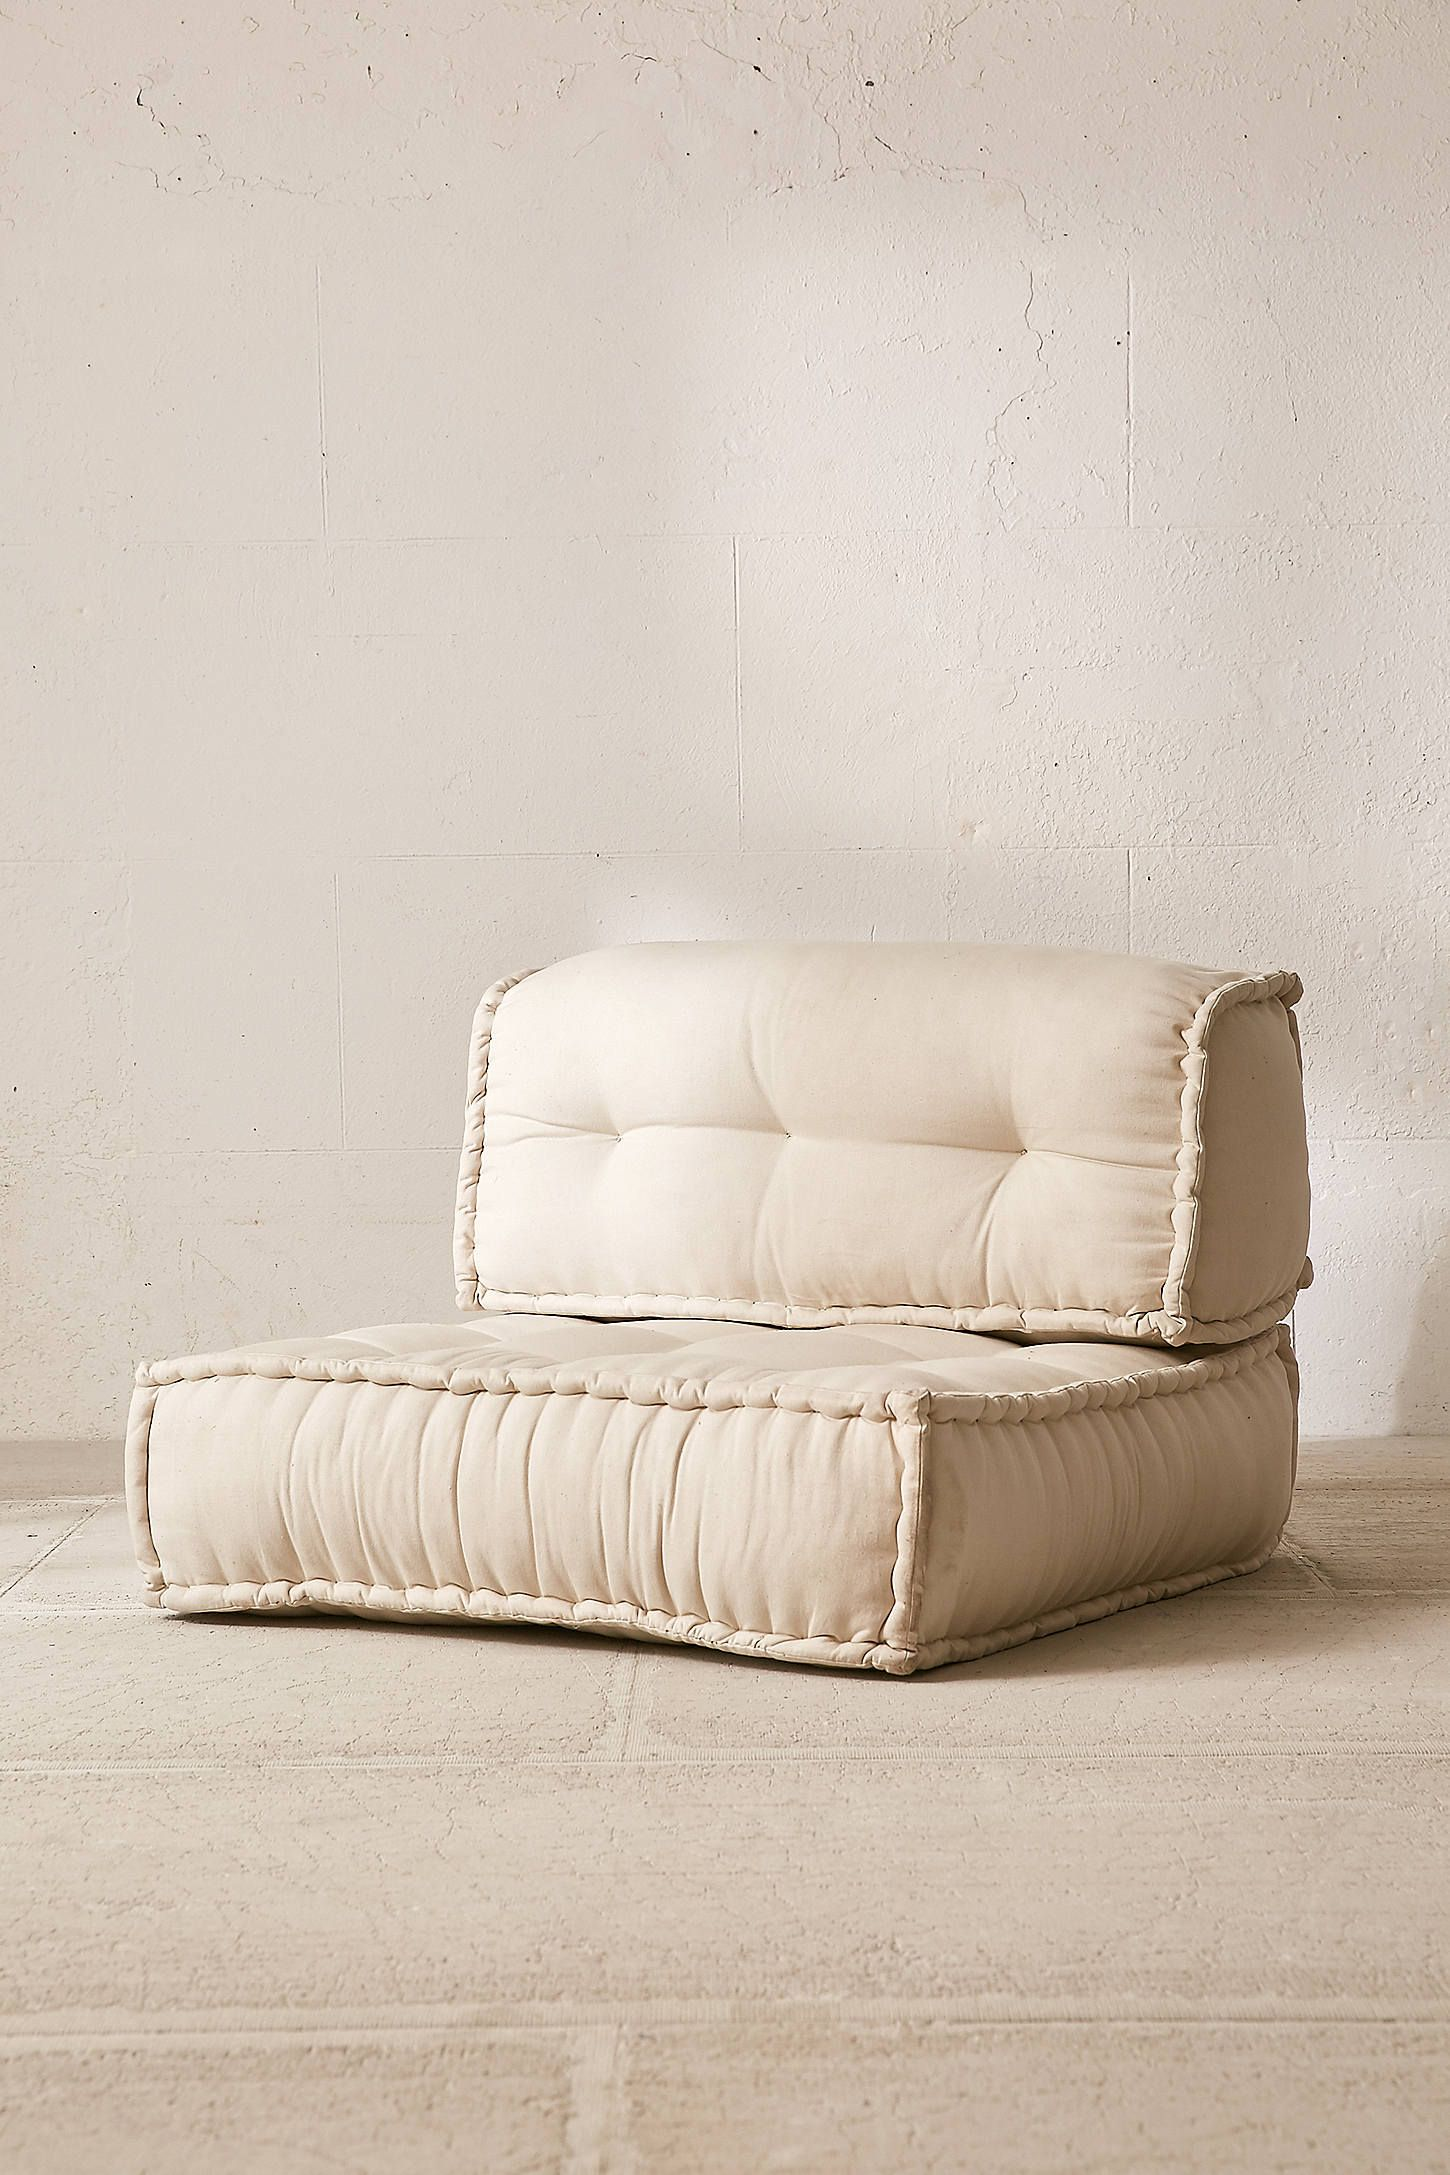 meditation cushion heaven only designs wonderful sale ways things support your transform pillows hippie big on oversized home decor floors pinterest sofa best dihult cushions large mattress into floor lifestyle replacement to with decorating back ideas for pepi pillow seat seating